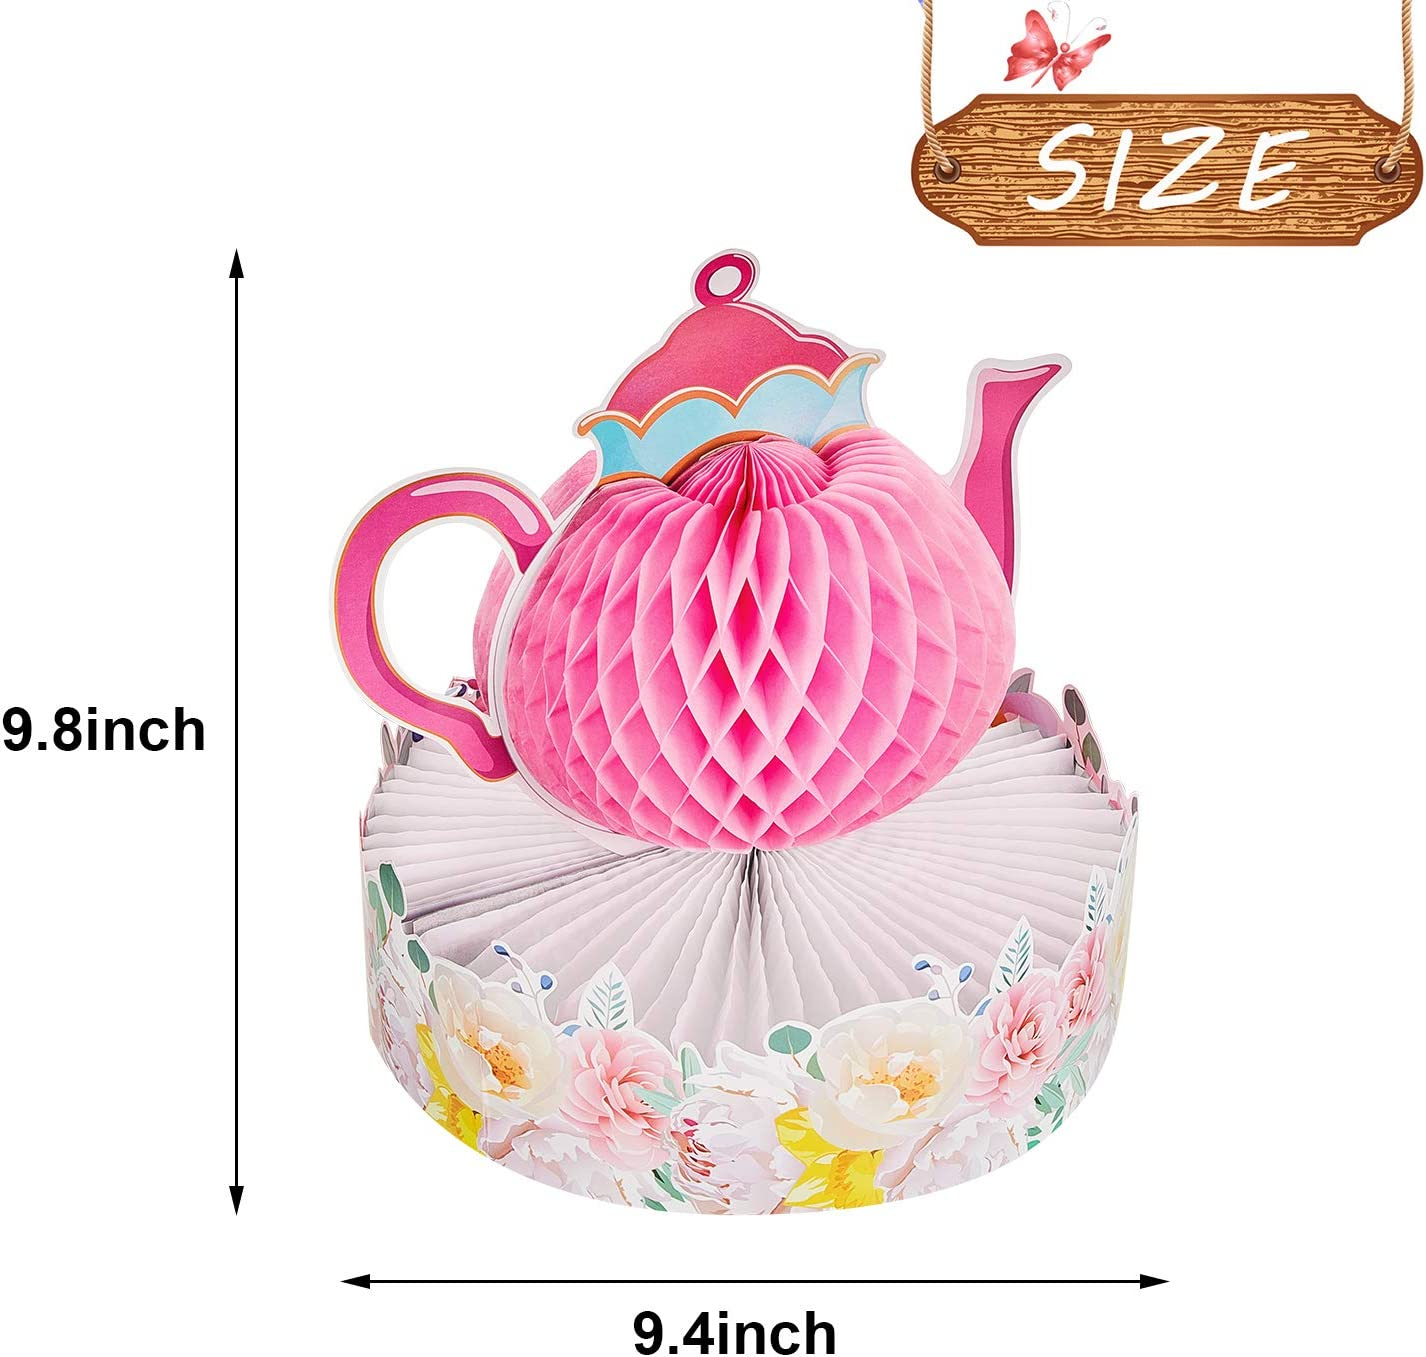 2 Pieces WILLBOND Floral Tea Party Centerpiece Princess Party Decorations Floral Tea Table Decorations Teapot Honeycomb Centerpiece for Floral Tea Themed Party Birthday Baby Shower Supplies